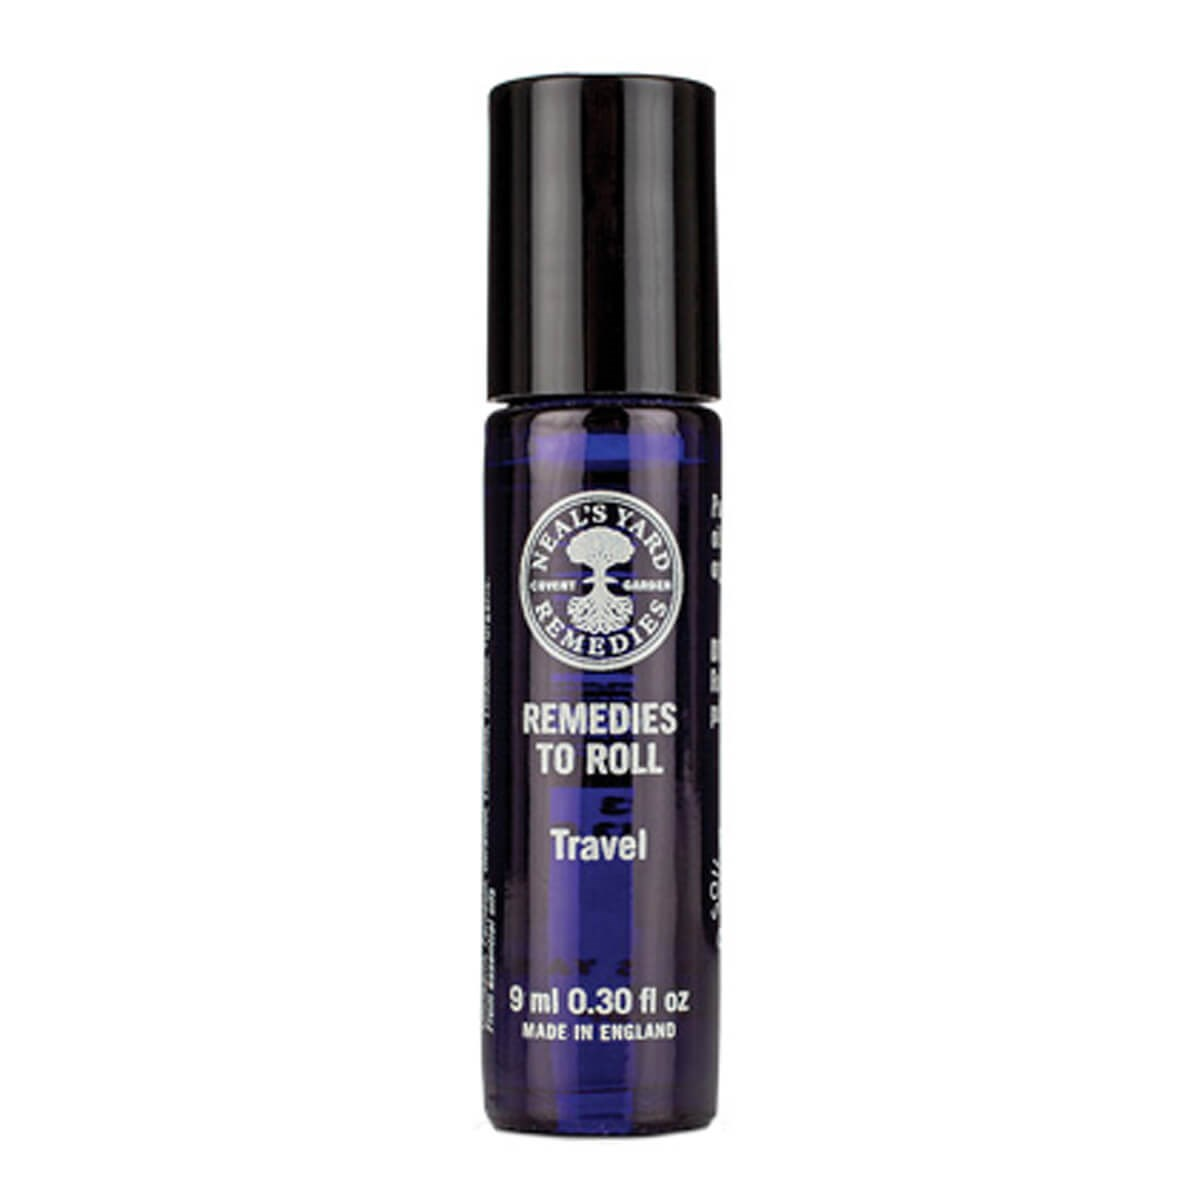 Neal's Yard Remedies Remedies to Roll - Travel